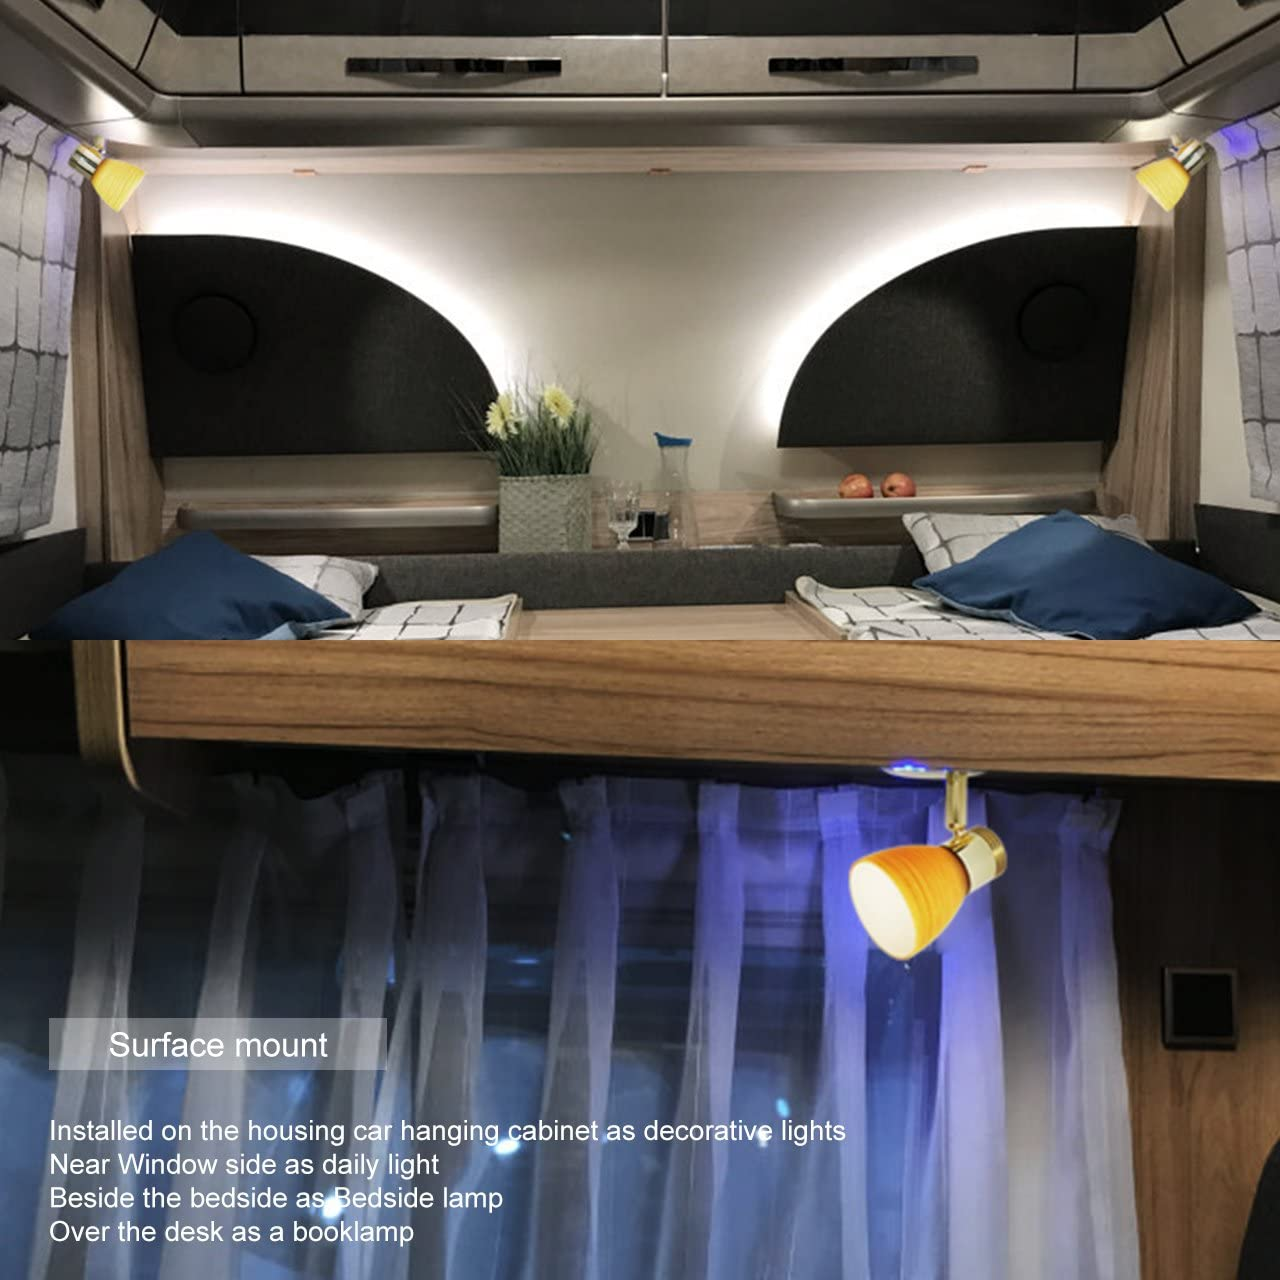 Pack of 2 as Boat Motorhouse Interior Lights RV Reading Wall Lamp with USB Socket- DC 12V Soft Warm White for Automotive Trailer Desk Bedside Book Dimmer Touch Switch with Blue Night Decor Light